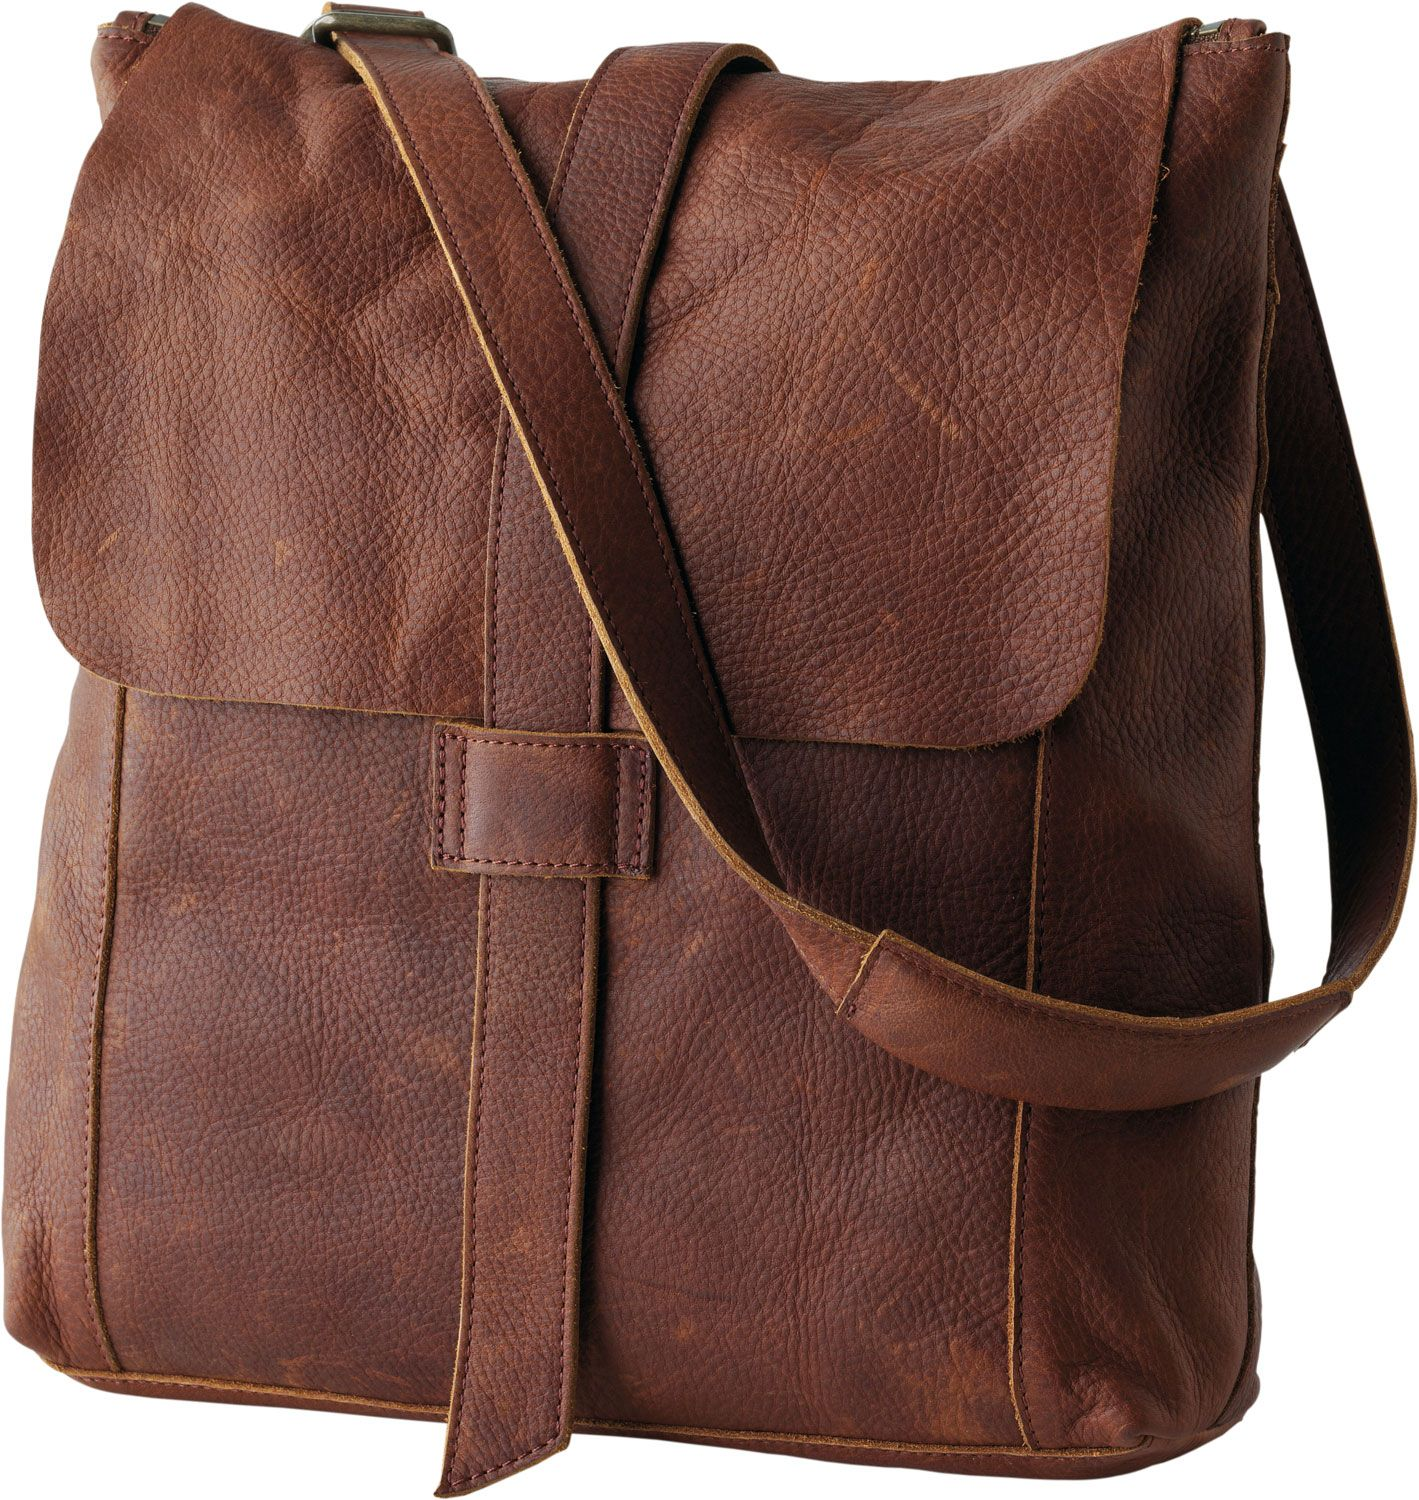 Love This Bag Perfect Messenger That Turns Into A Backpack Hold Cell Ipad Wallet And More Heavy Beautiful Leather I Want